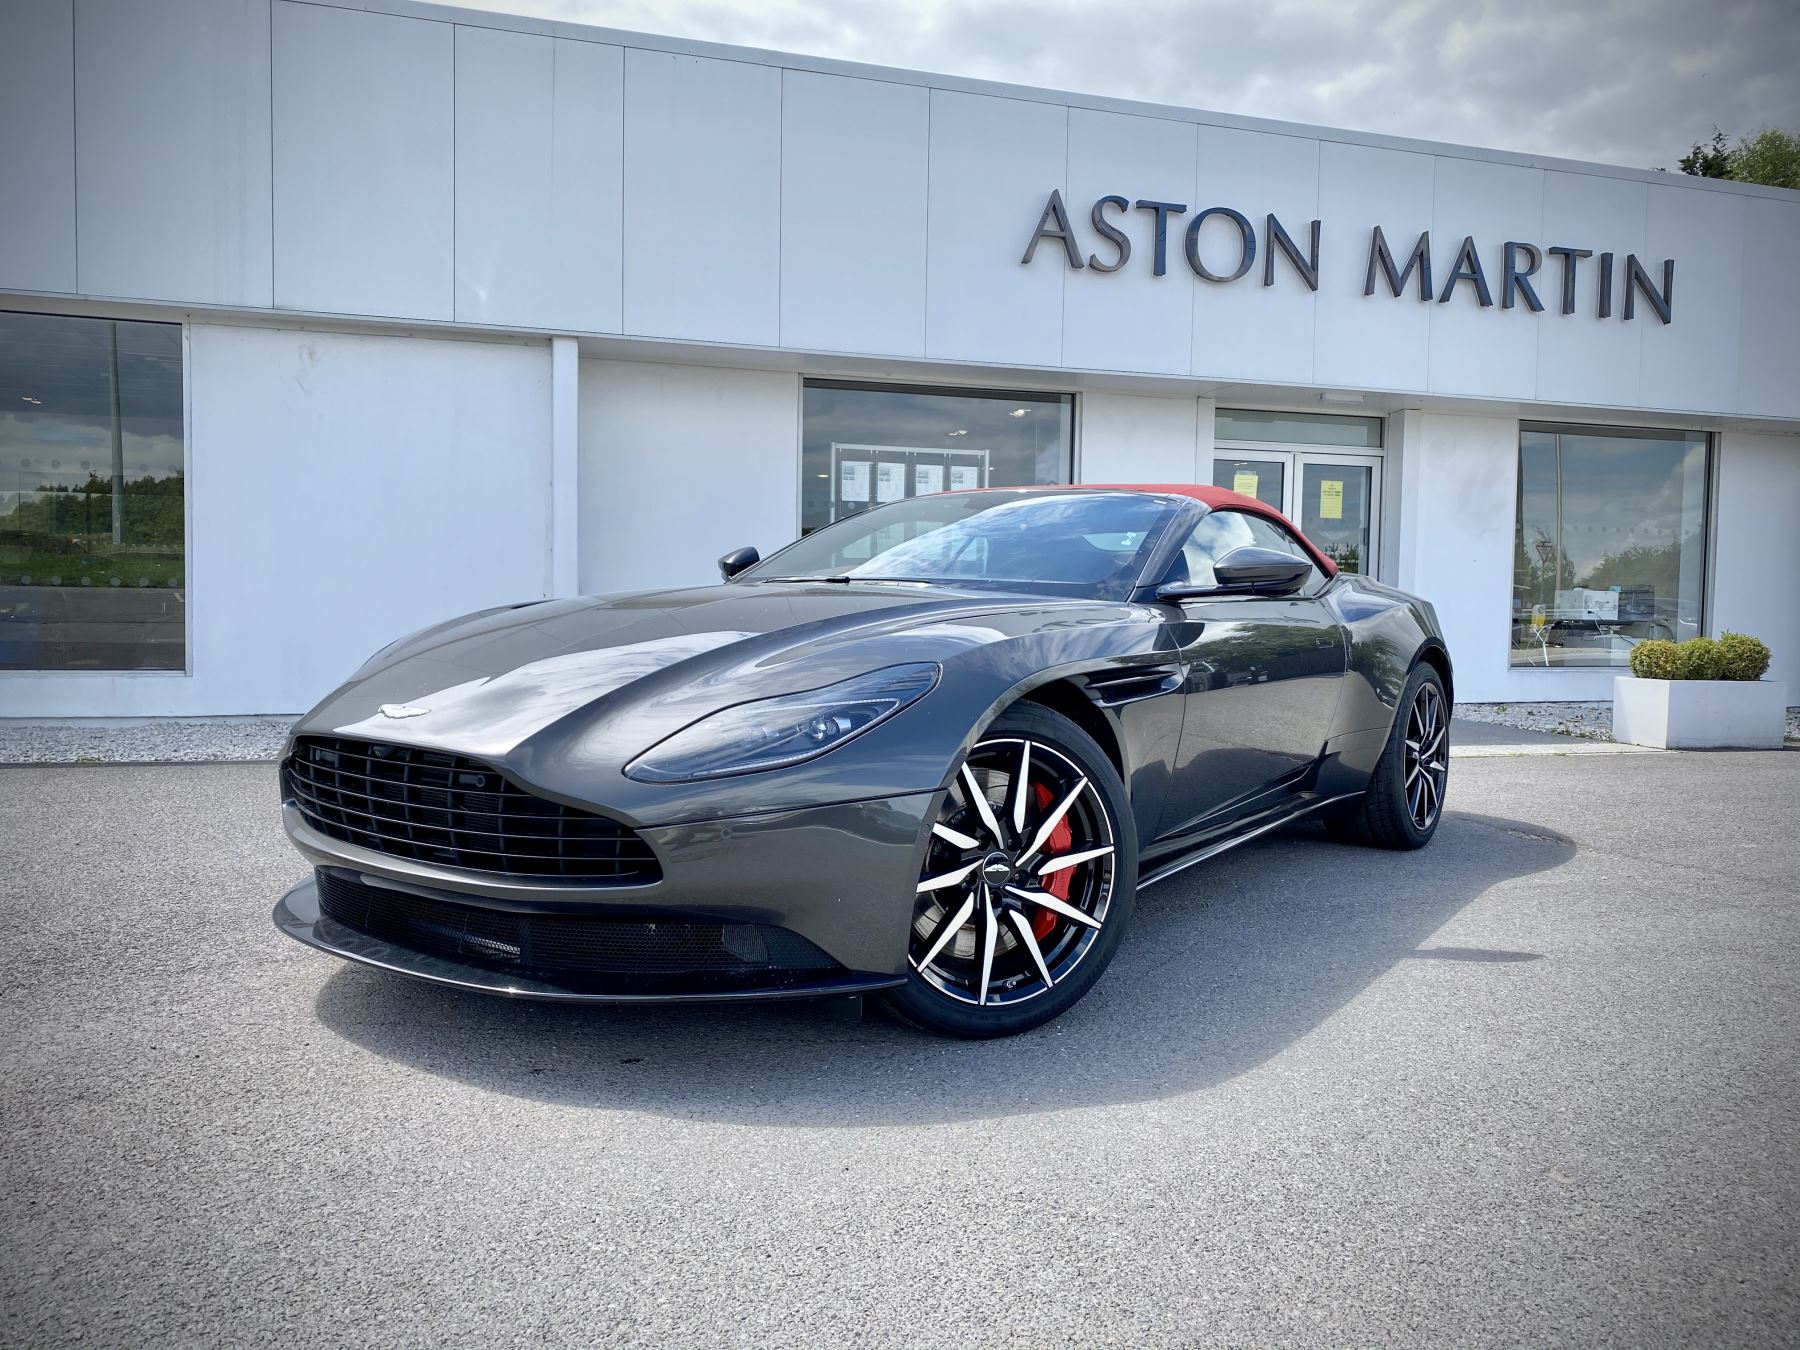 Aston Martin DB11 V8 Volante Touchtronic, Quantum Silver, Bordeaux Red Roof, Lords Red Leather, 1 Owner From New. 4.0 Automatic 2 door Convertible